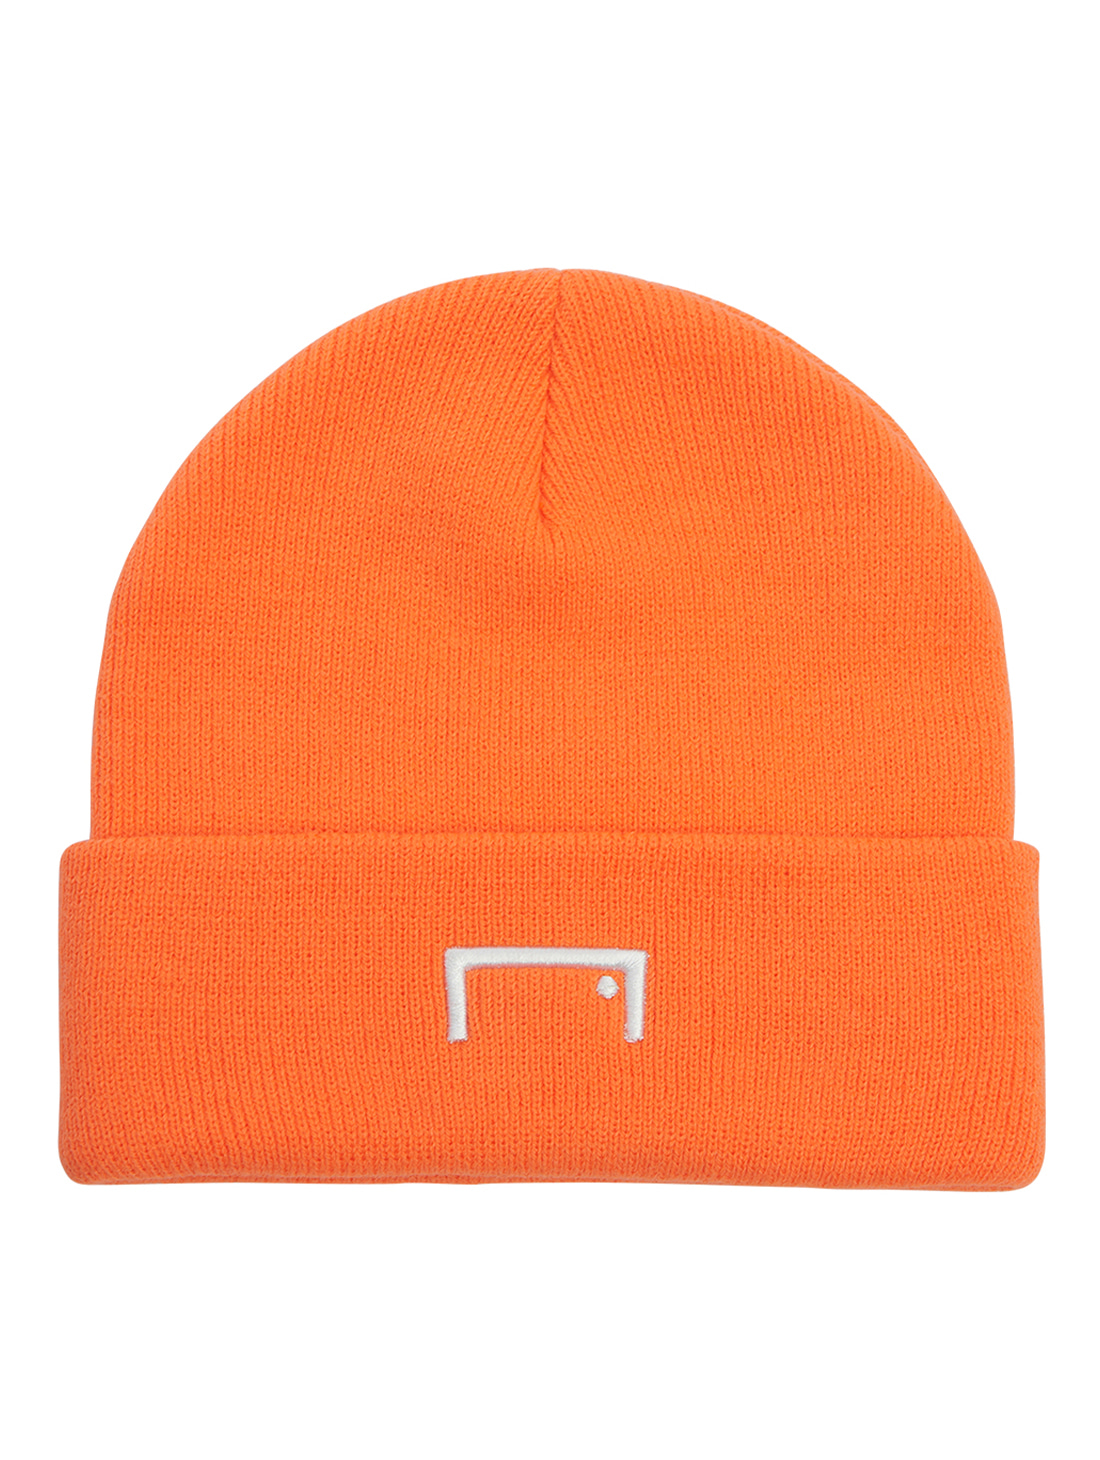 RESPECT LABEL BEANIE - ORANGE